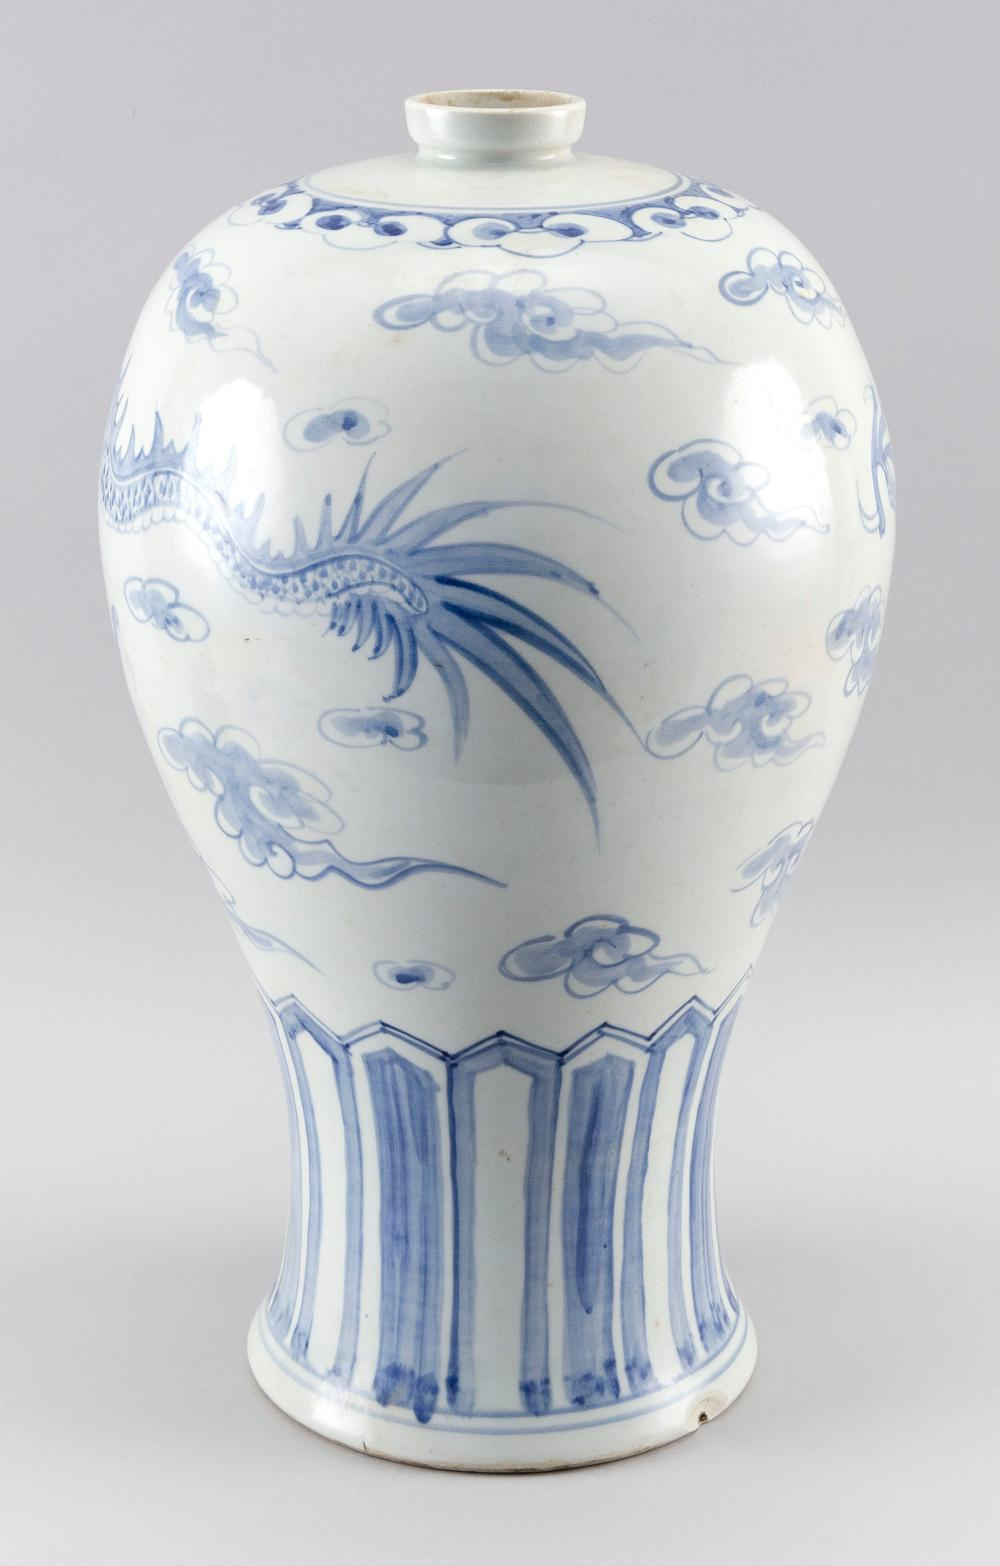 KOREAN BLUE AND WHITE PORCELAIN MEIPING VASE Dragon decoration over repeating elongated lappets at base. Height 20